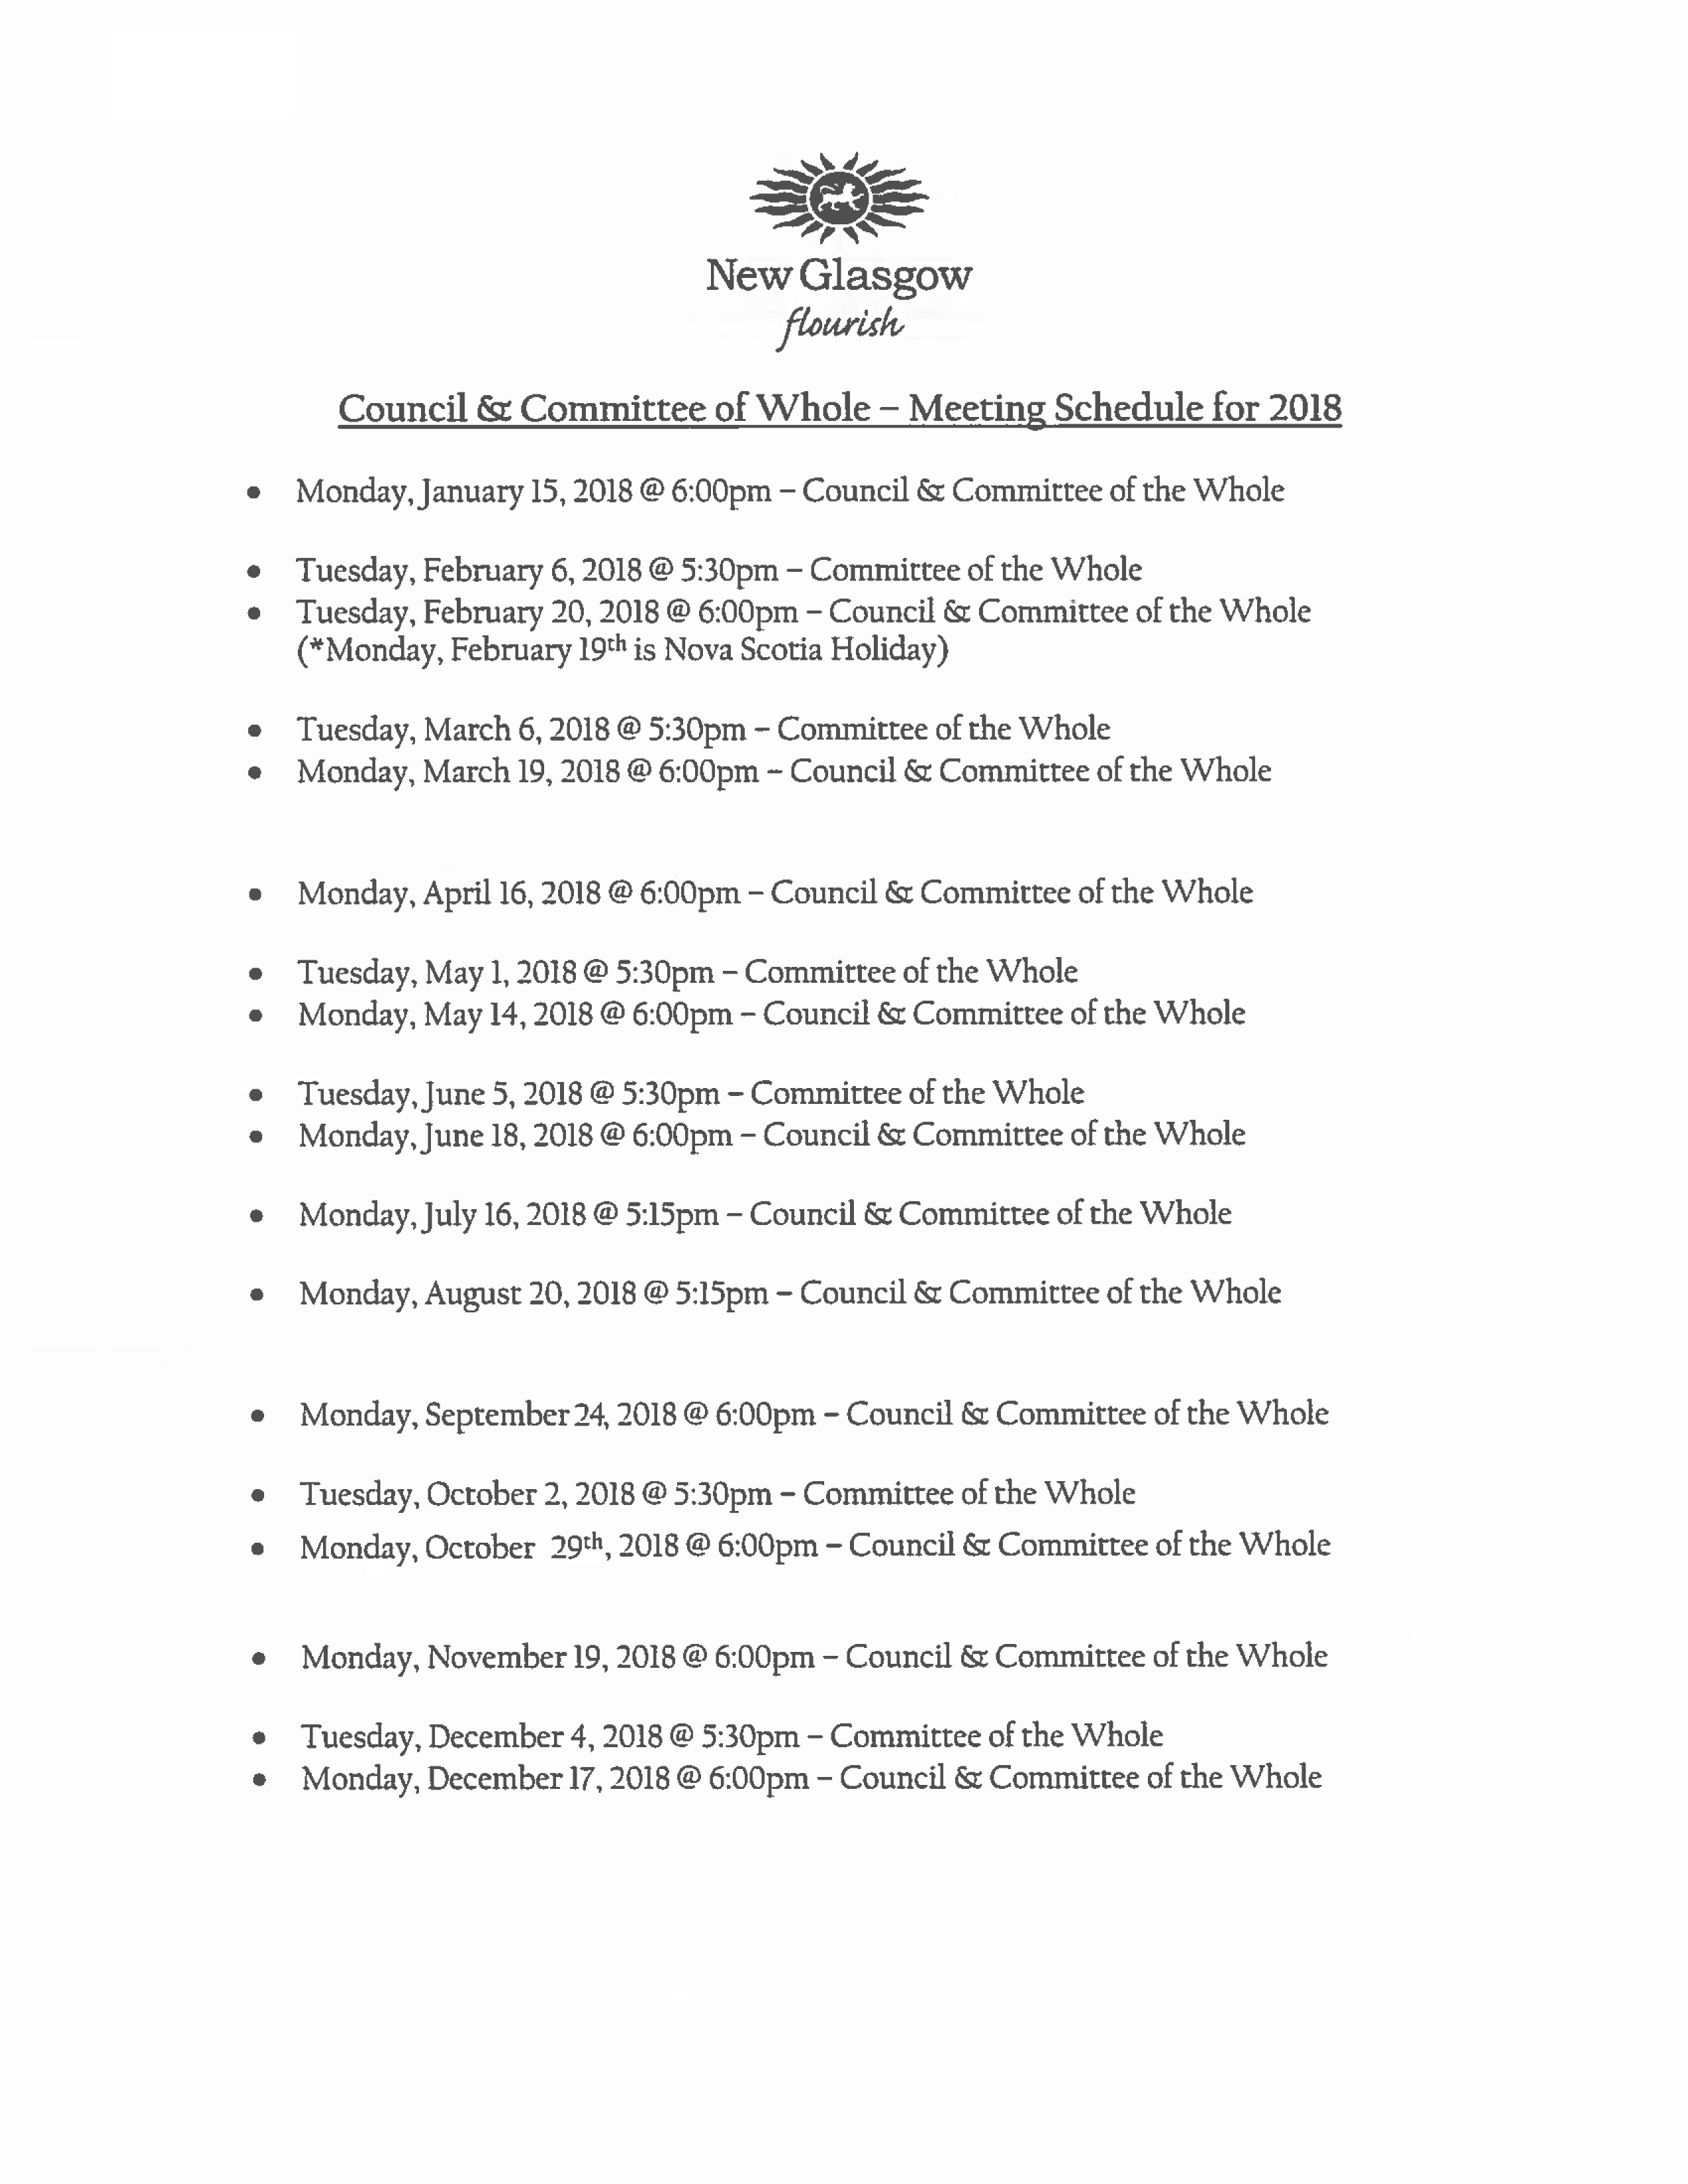 Council Schedule 2018 revised